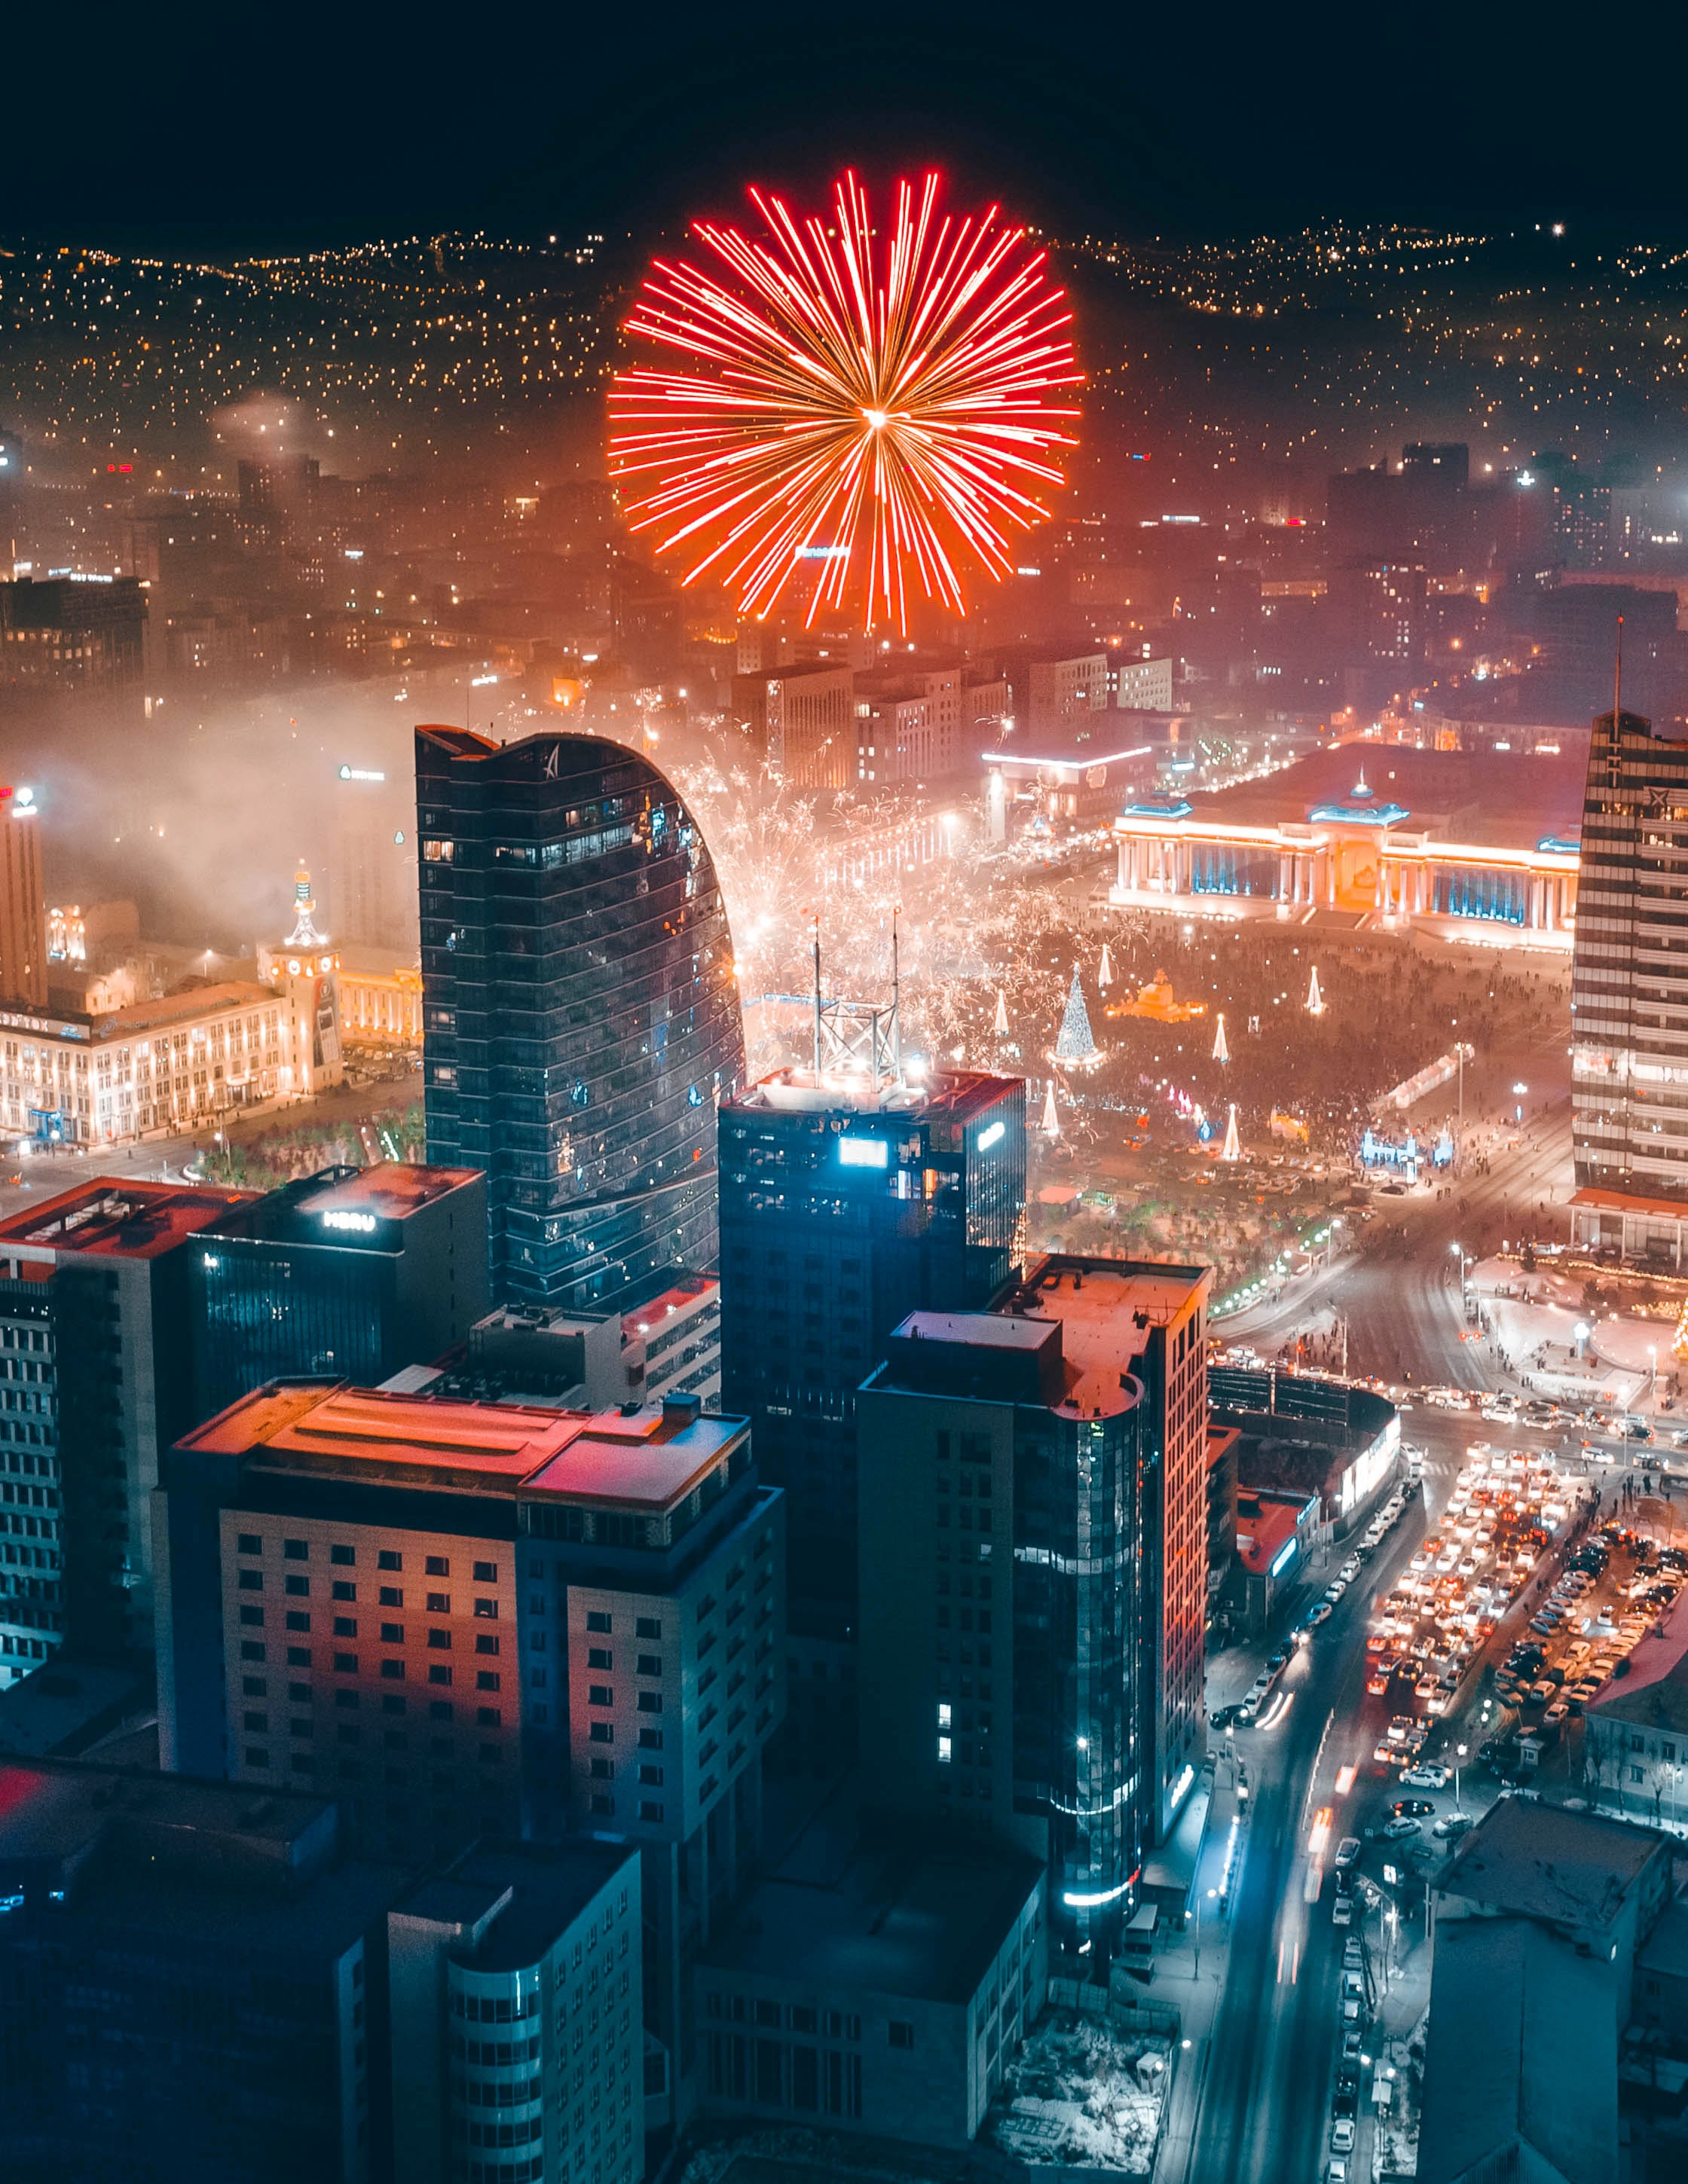 81178 free wallpaper 1080x2400 for phone, download images Holidays, Night, City, Building, Lights, View From Above, Fireworks, Firework 1080x2400 for mobile